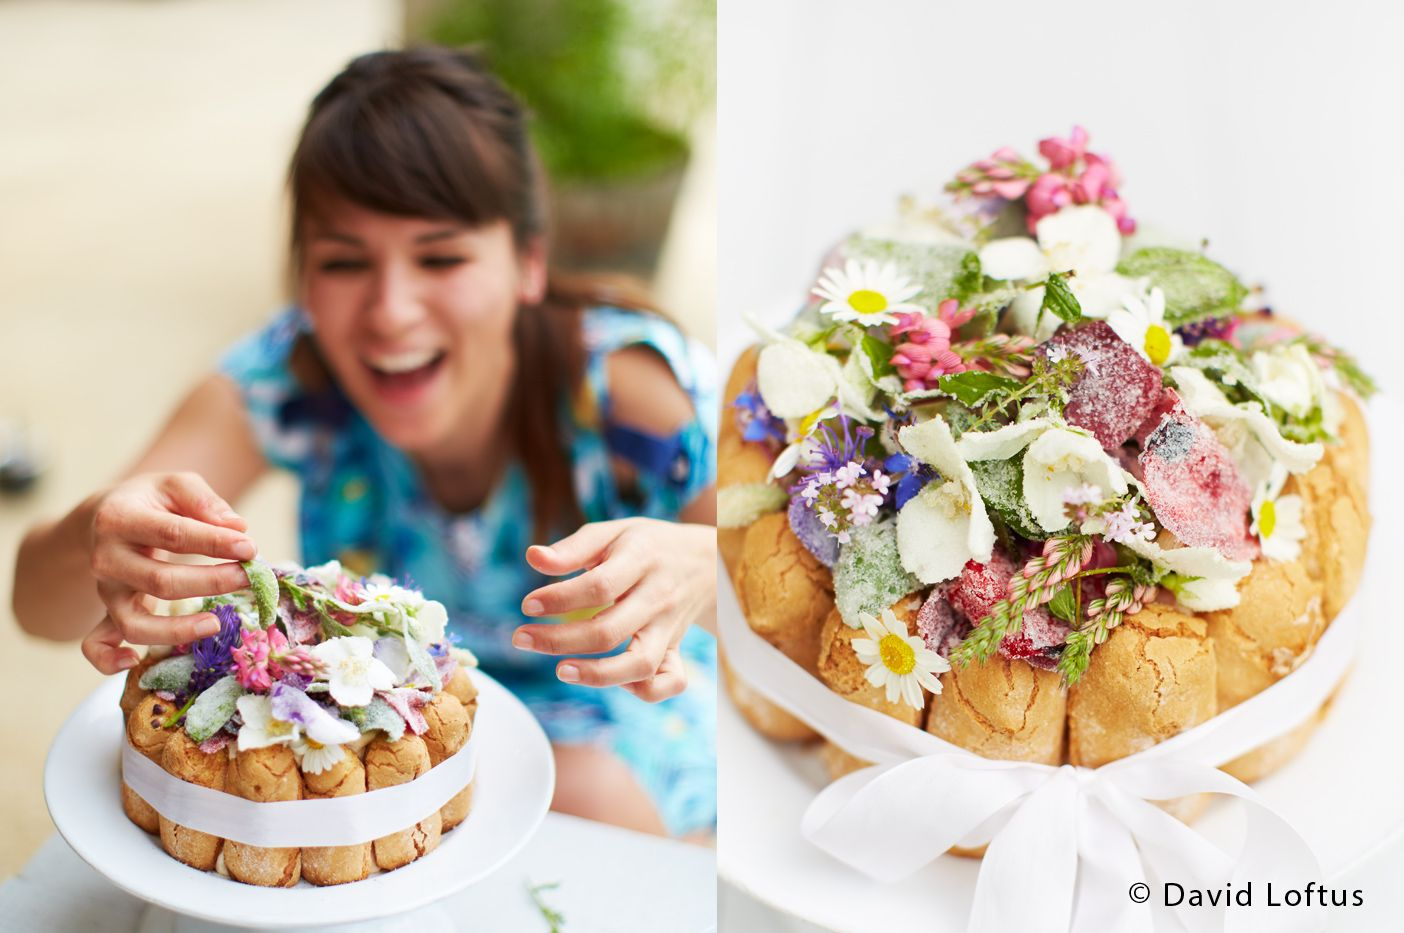 Rachel Khoo is an English chef, writer and broadcaster, with her own ...